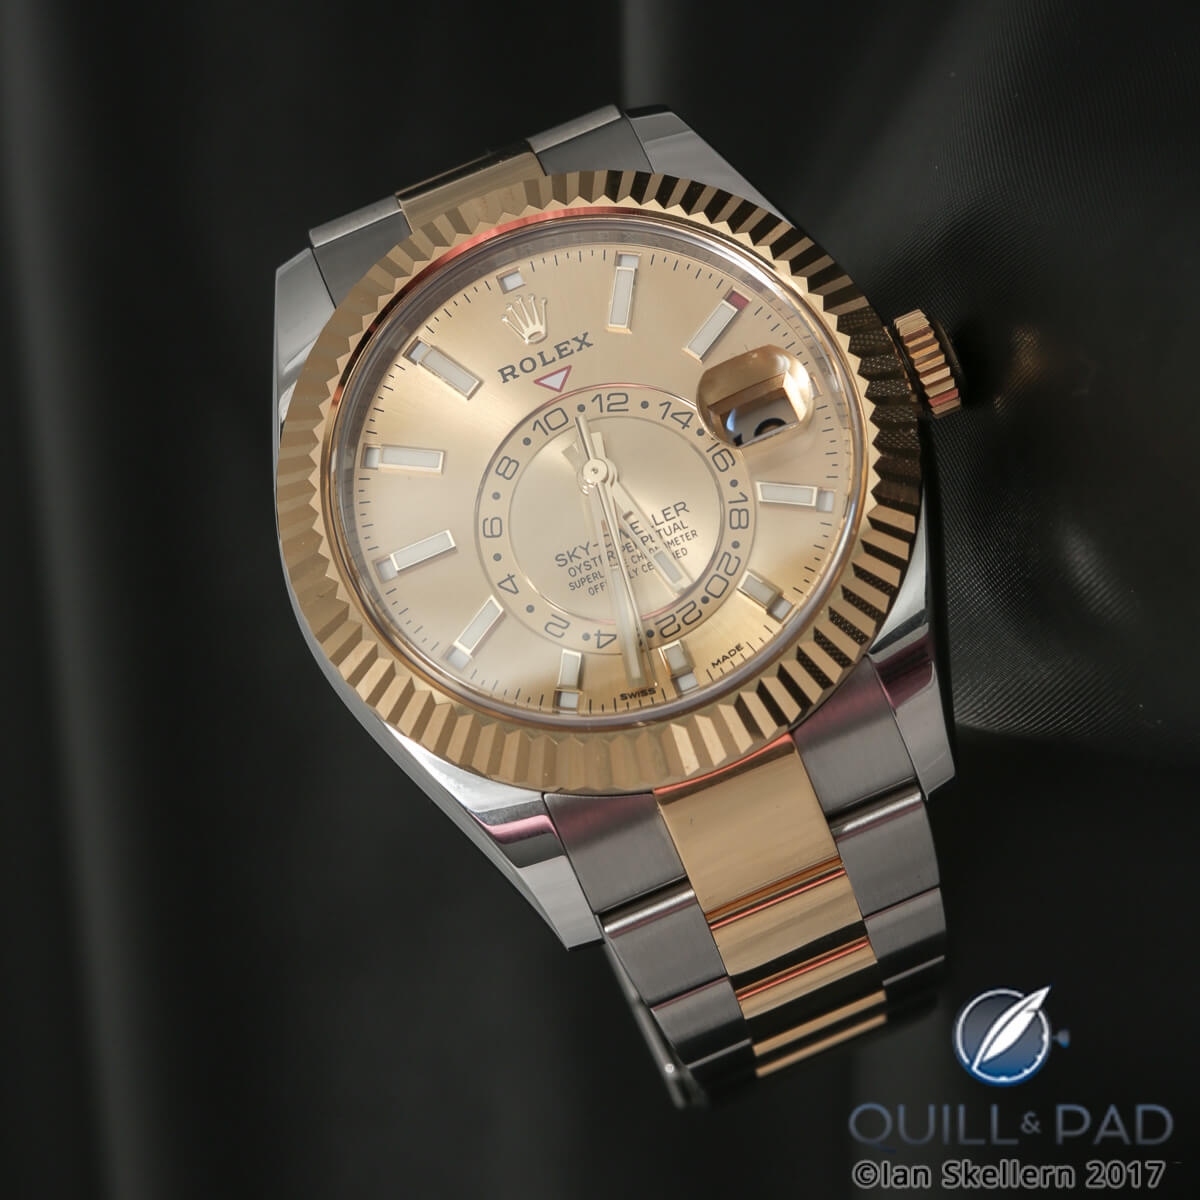 f4dcf5277 Why I Bought It: Rolex Sky-Dweller In Stainless Steel Rolesor ...